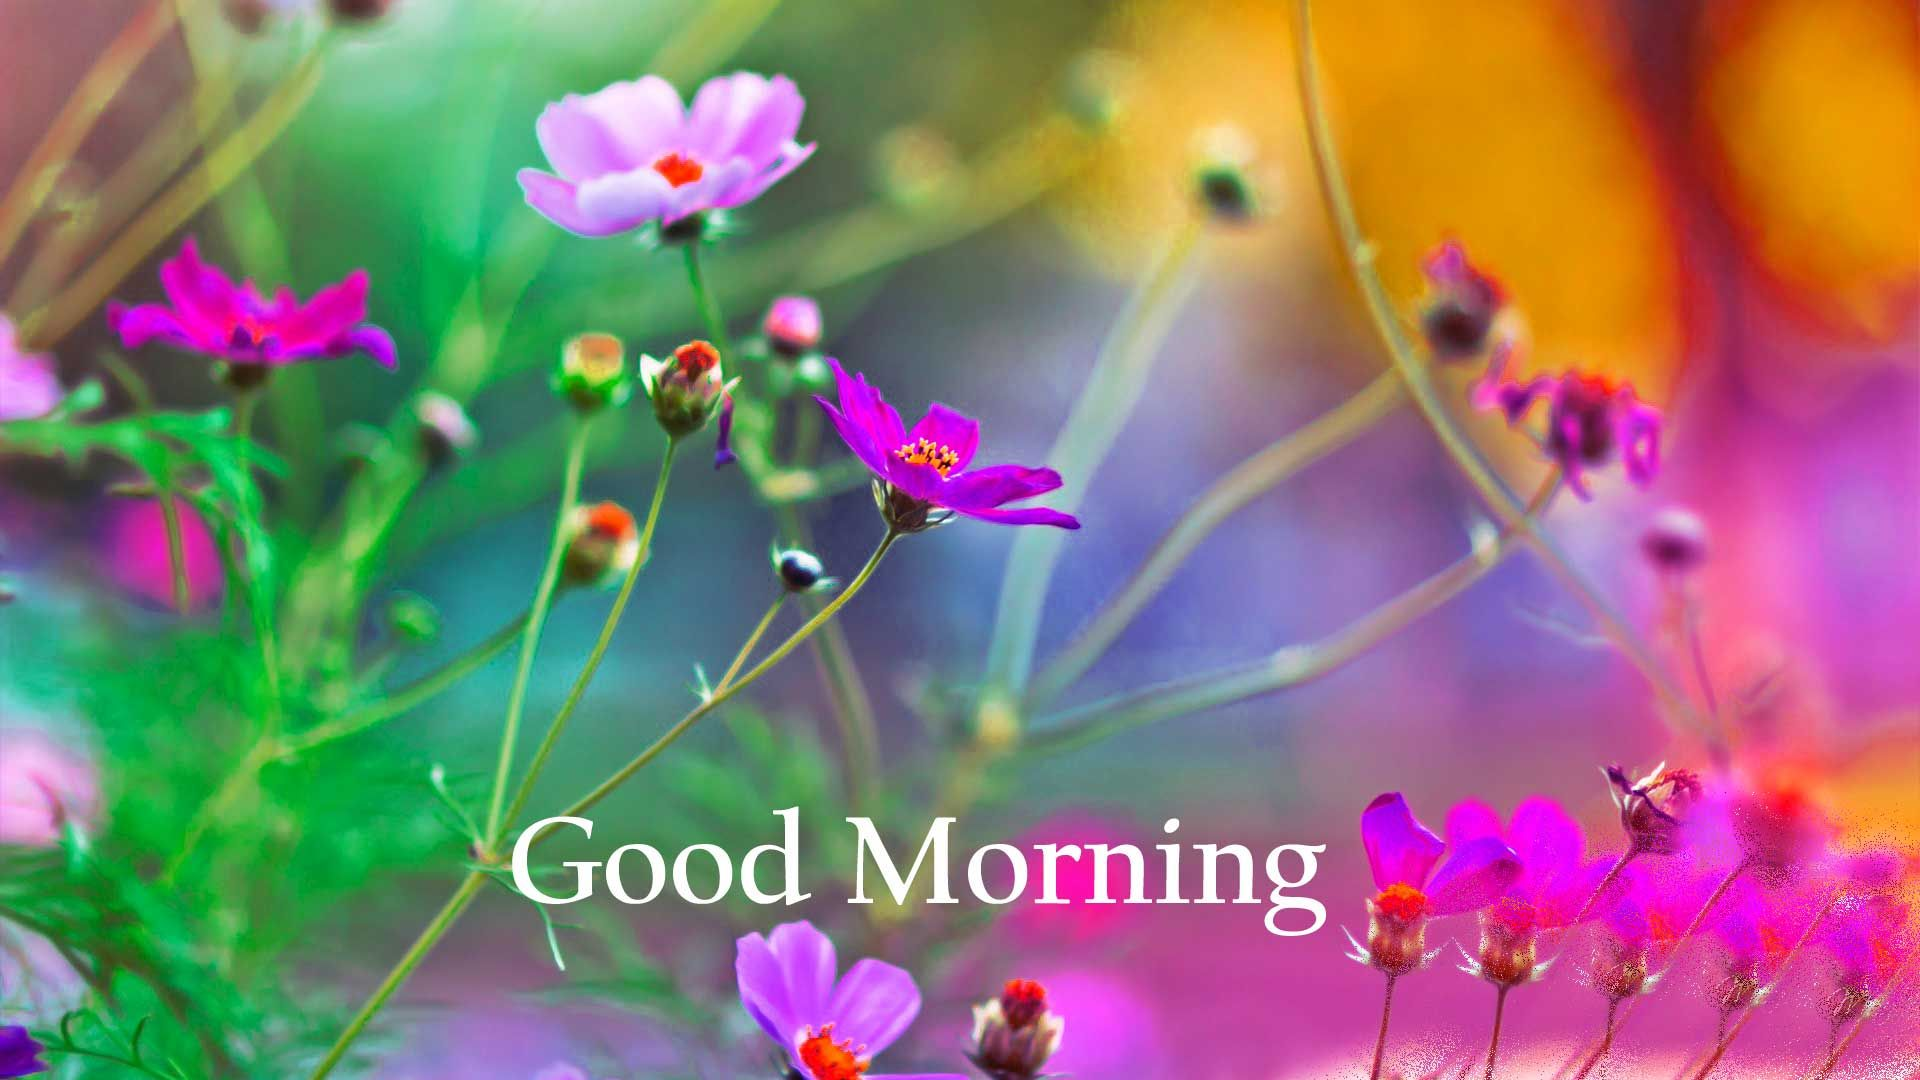 Good Morning Images For Whatsapp Free Download Hd Wallpaper Pictures Photos Of Good Morning In 2020 Good Morning Images Good Morning Images Hd Good Morning Inspiration